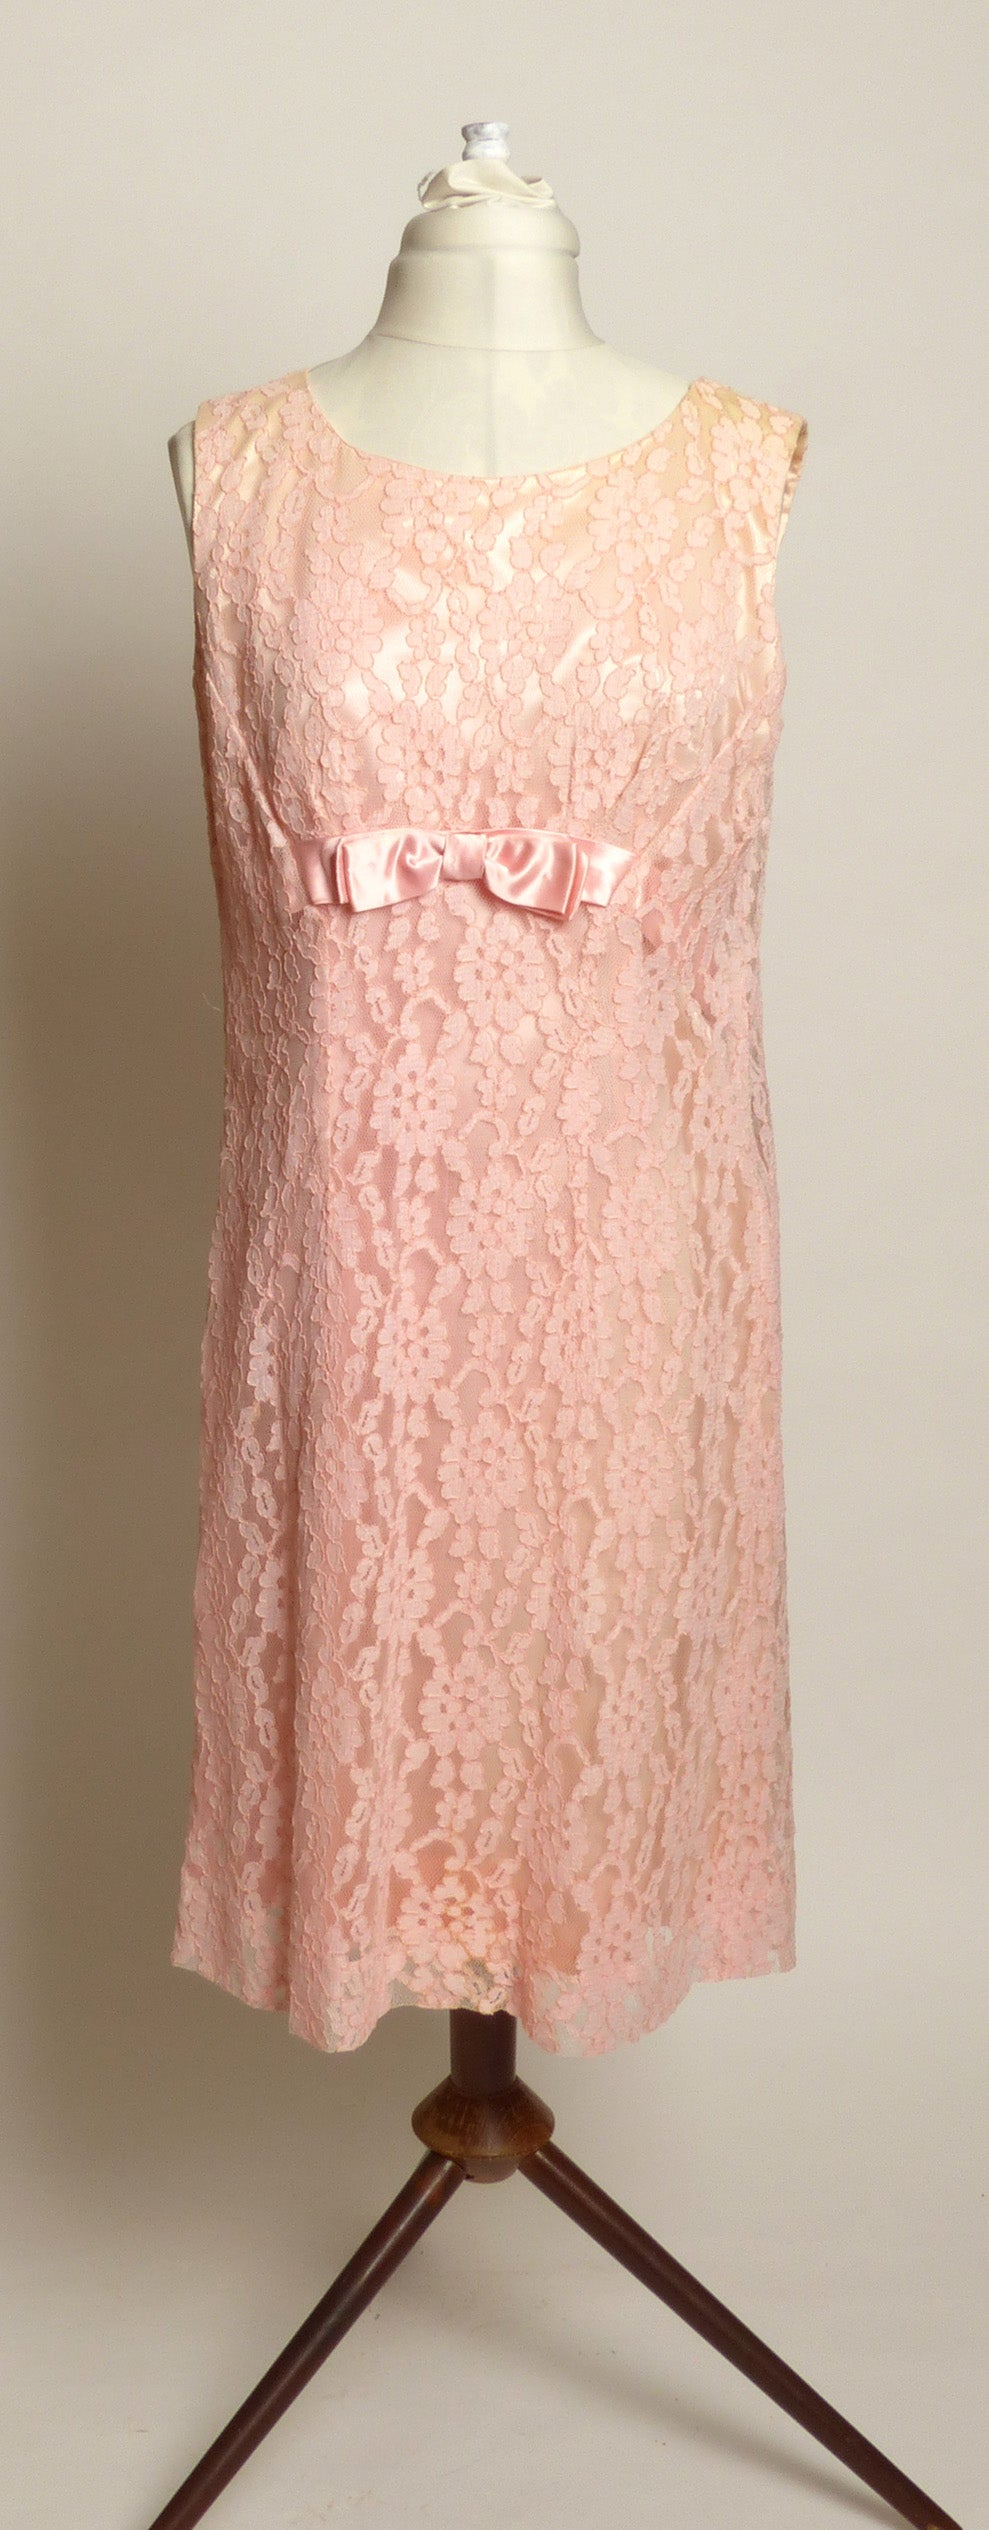 Circa 1960s Hand-made by Irene Pink Lace Dress with Satin Bow at Bodice